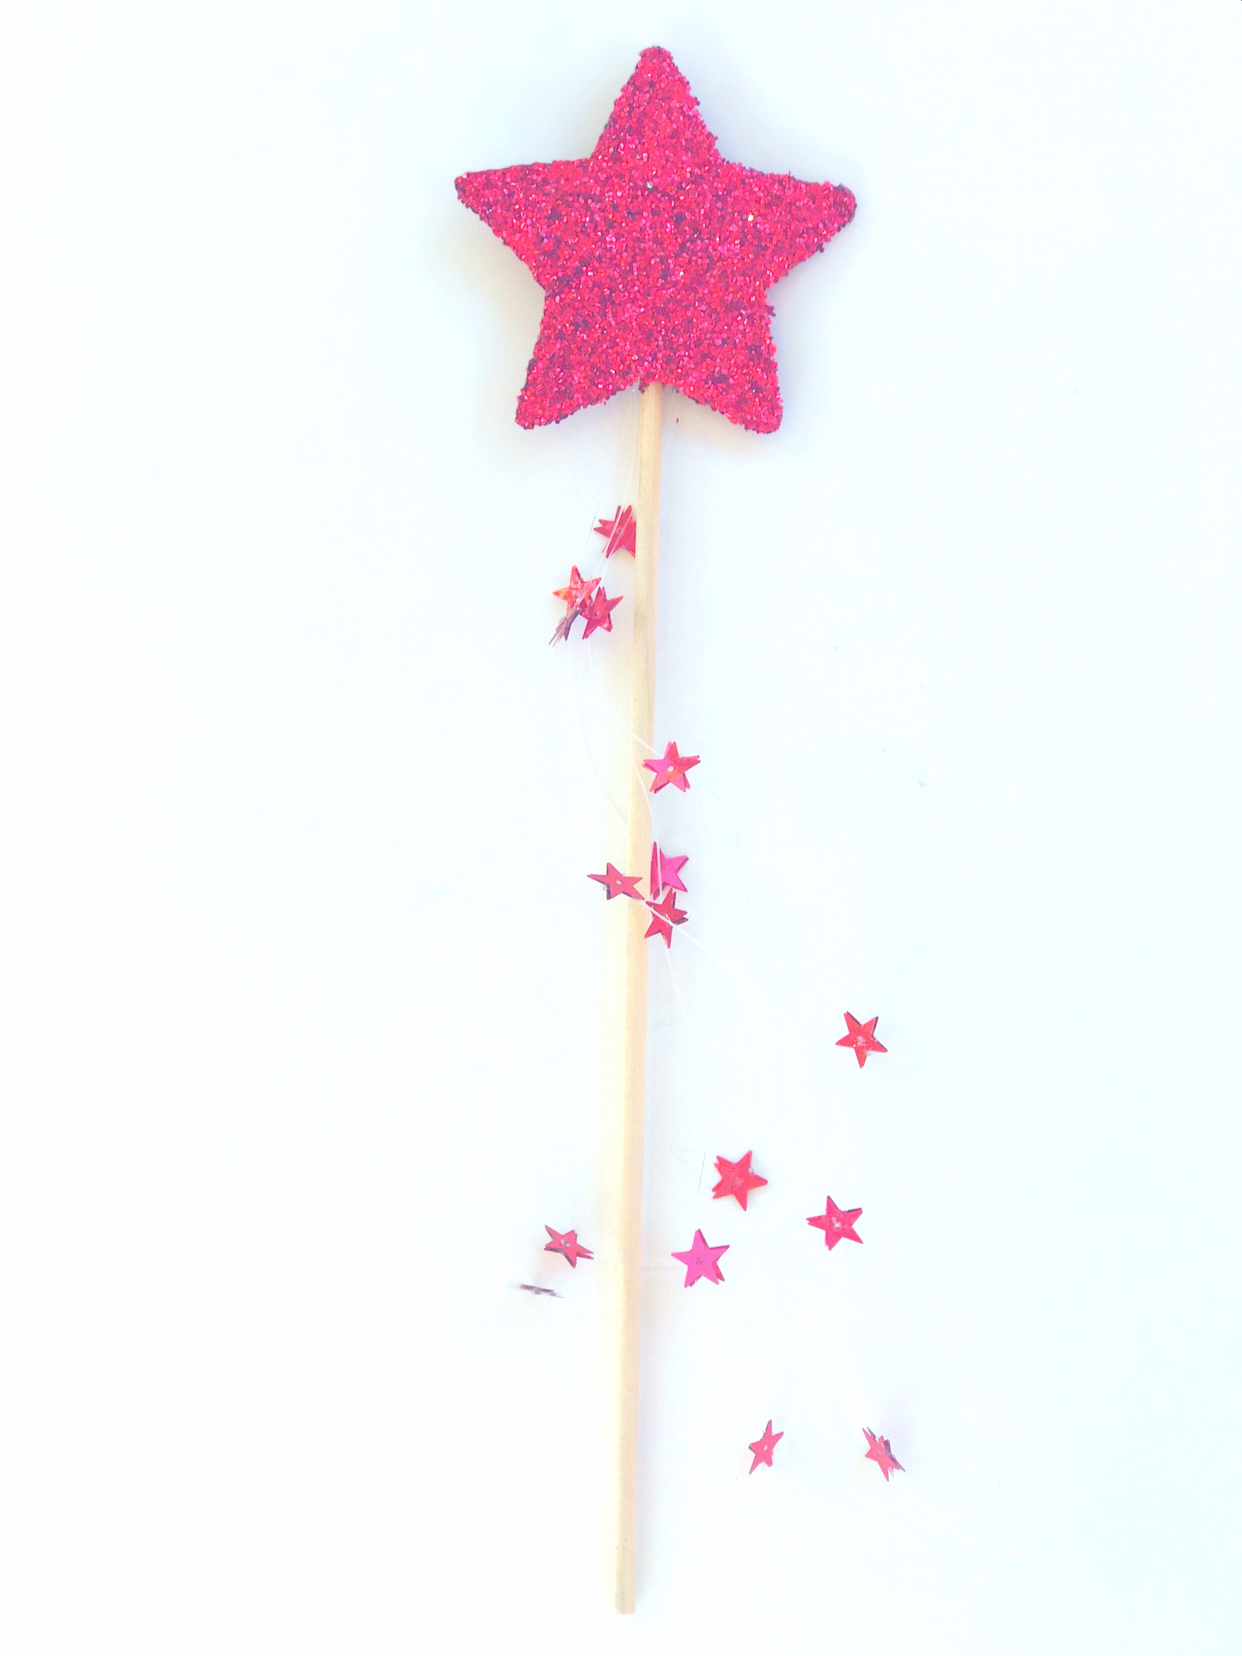 Cast A Spell And Wish Upon A Star With This Magical Wooden Wand Perfect For Dress Up And Costume Parties Fairy Wands Christmas Party Supplies Barbie Doll Set